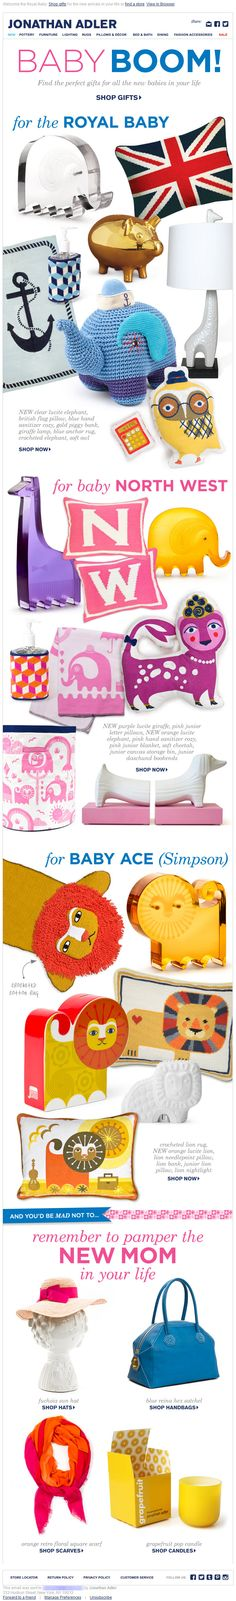 Jonathan Adler >> sent 7/22/13 >> We're Royally Excited >> Sent when Catherine, Duchess of Cambridge, went into labor, this well-planned and highly topical email plays off a trio of celebrity births: the royal birth and that of Jessica Simpson's son, Ace, and Kanye West and Kim Kardashian's daughter, North. Timely, shows depth of products and very fun. —Ivy Wright, Global Public Relations Specialist, ExactTarget